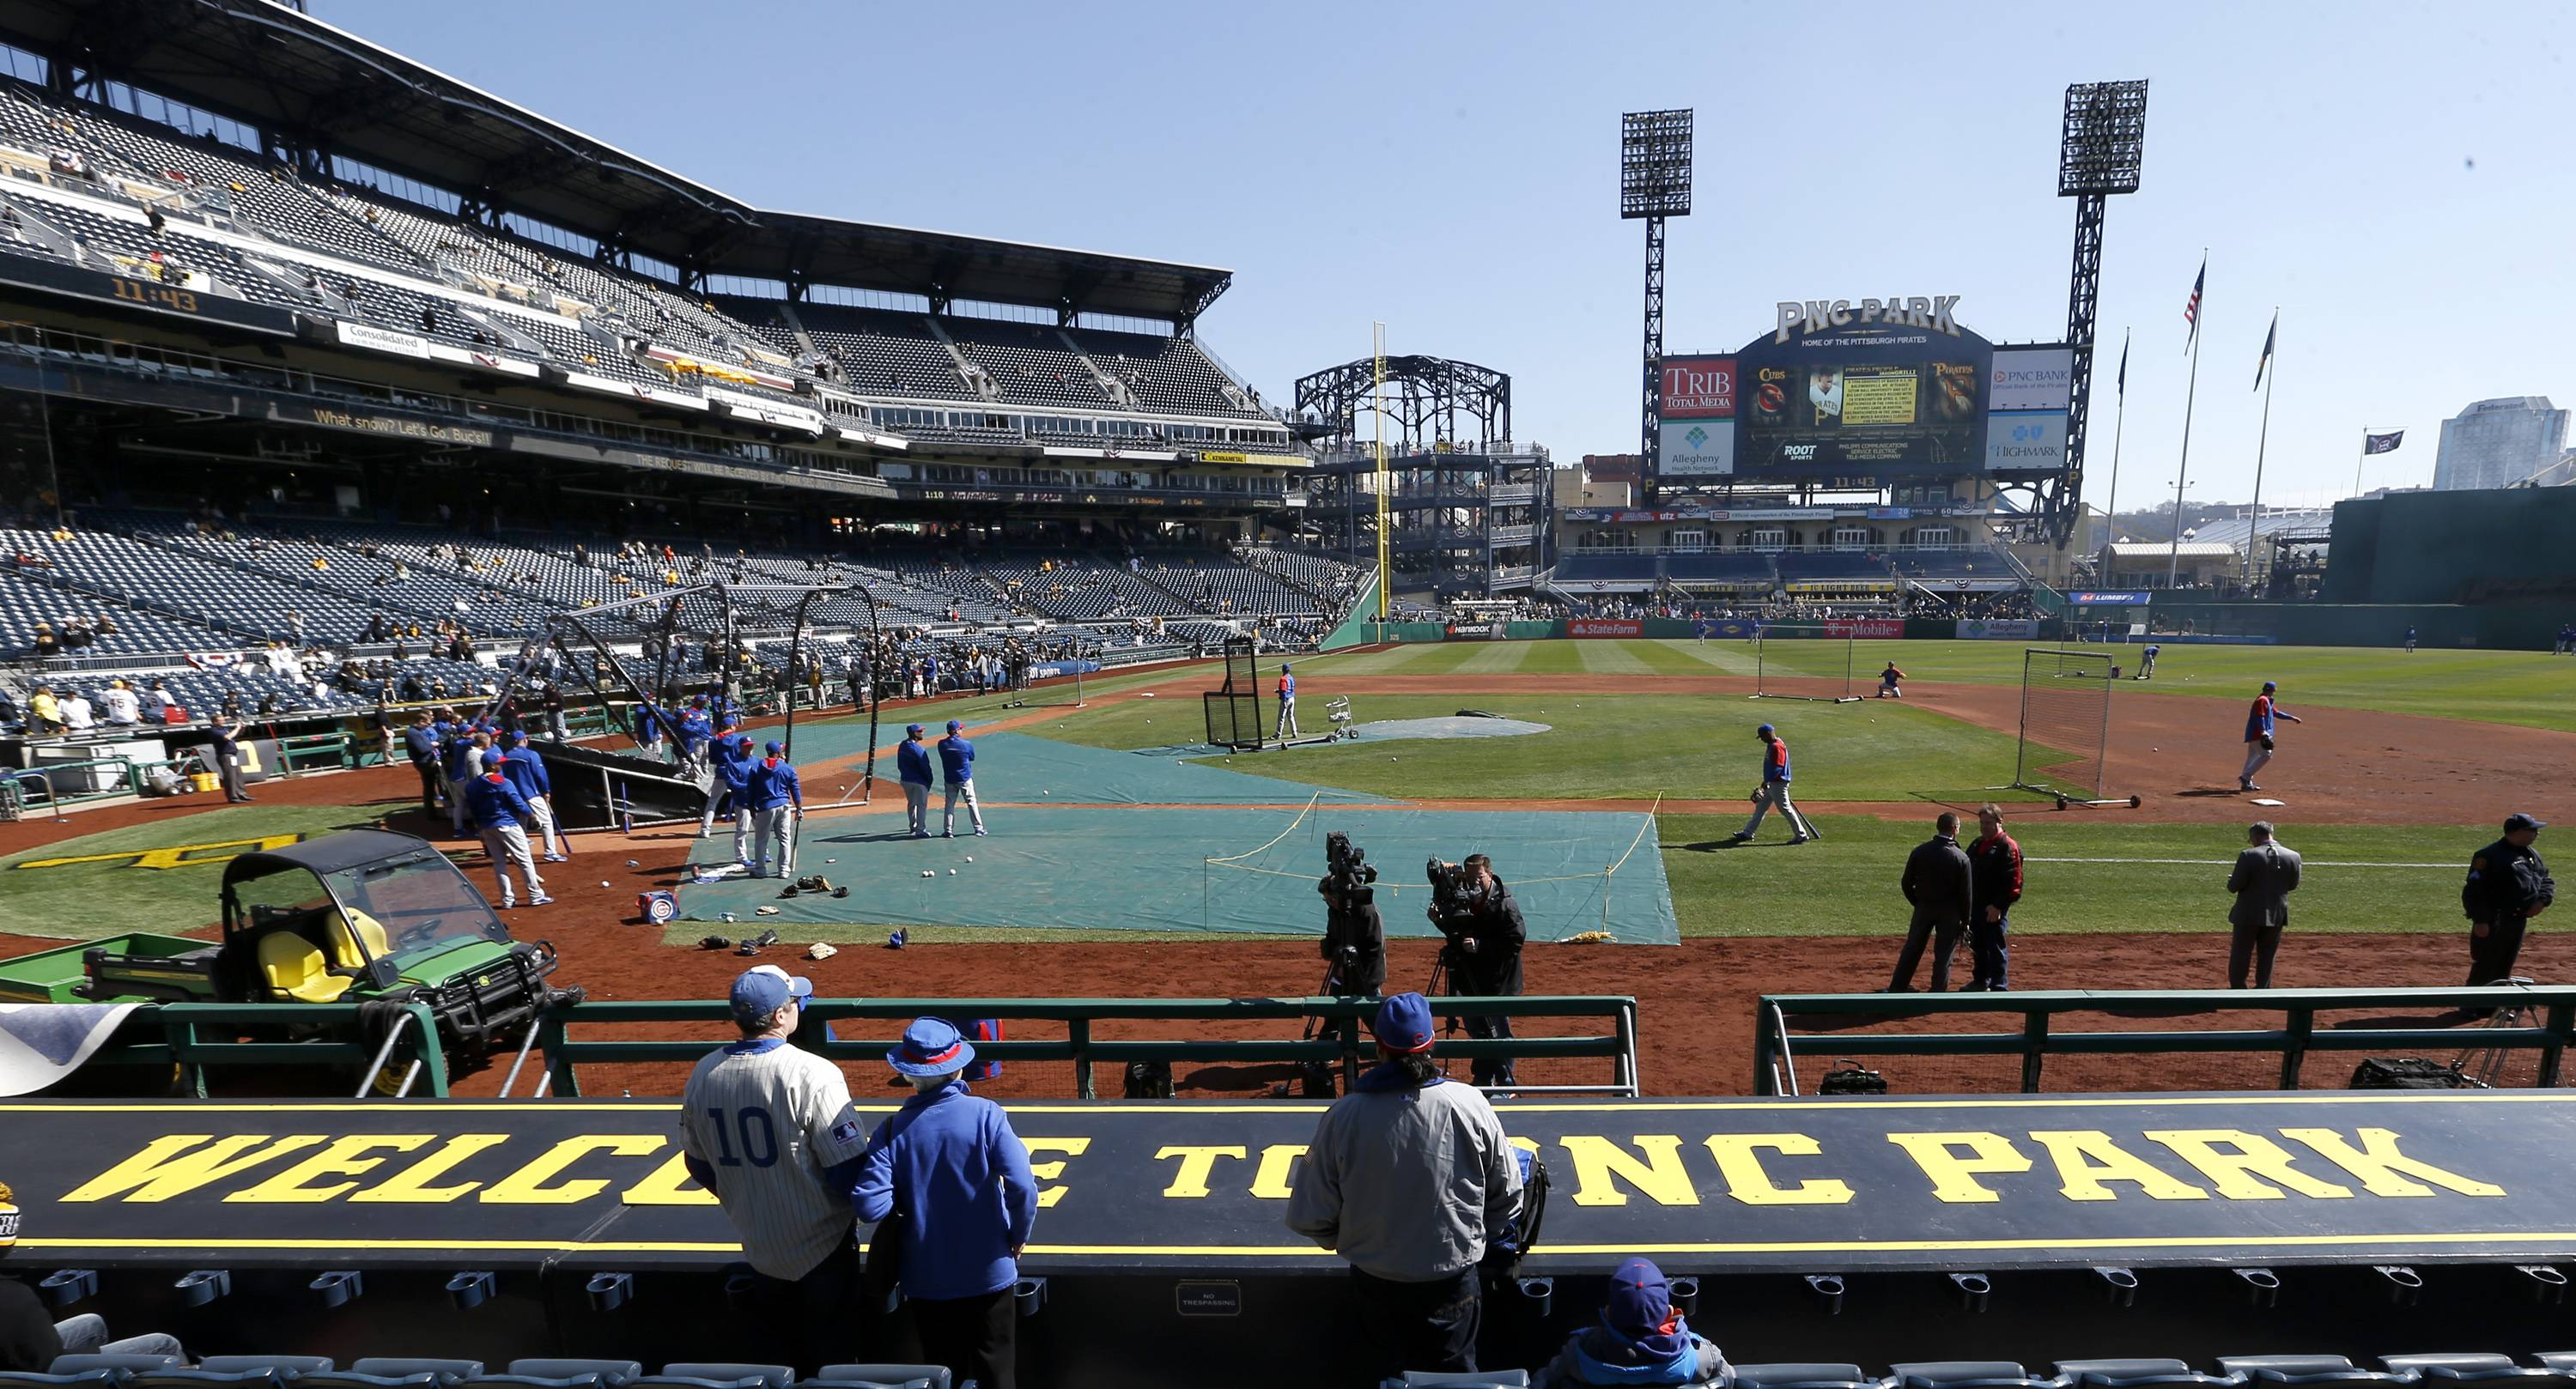 Chicago Cubs fans stand behind the first base dugout at PNC Park in Pittsburgh as their team takes batting practice.